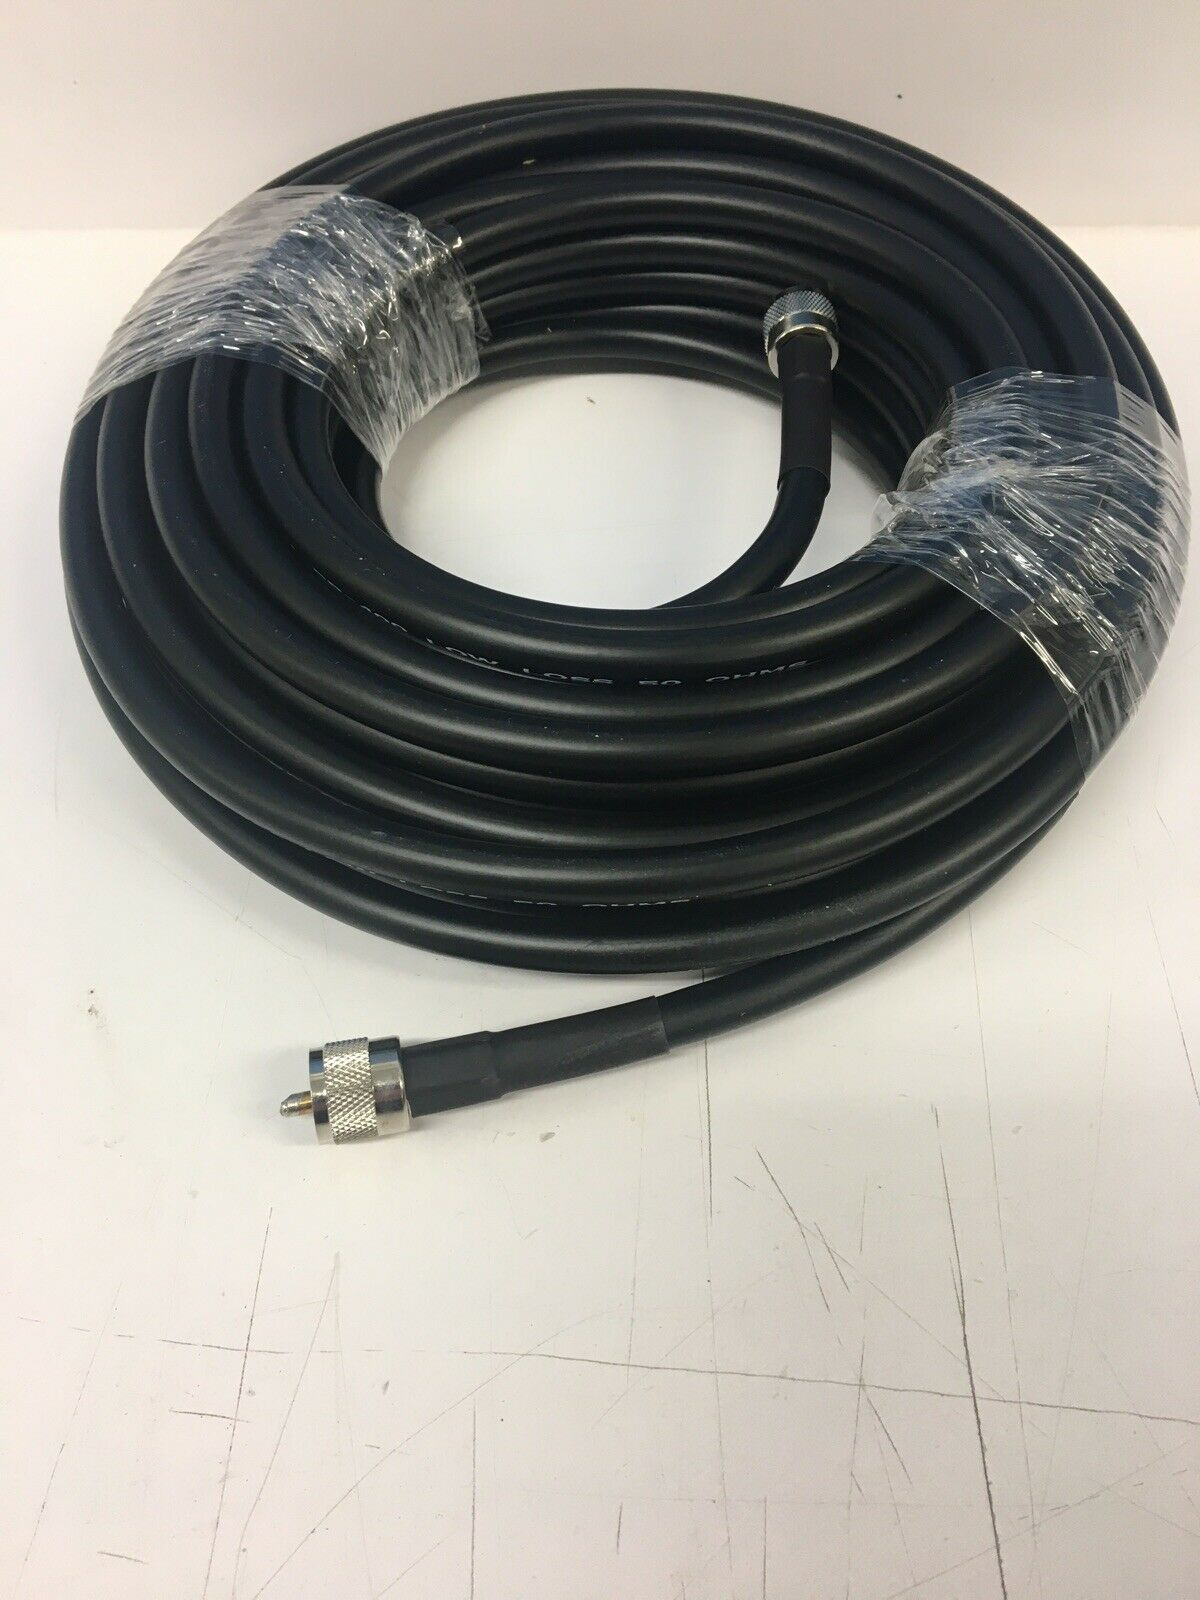 LMR-400 50' Super Low Loss Coax Cable Browning US Made PL-259 To PL-259 Hi Power. Buy it now for 60.00